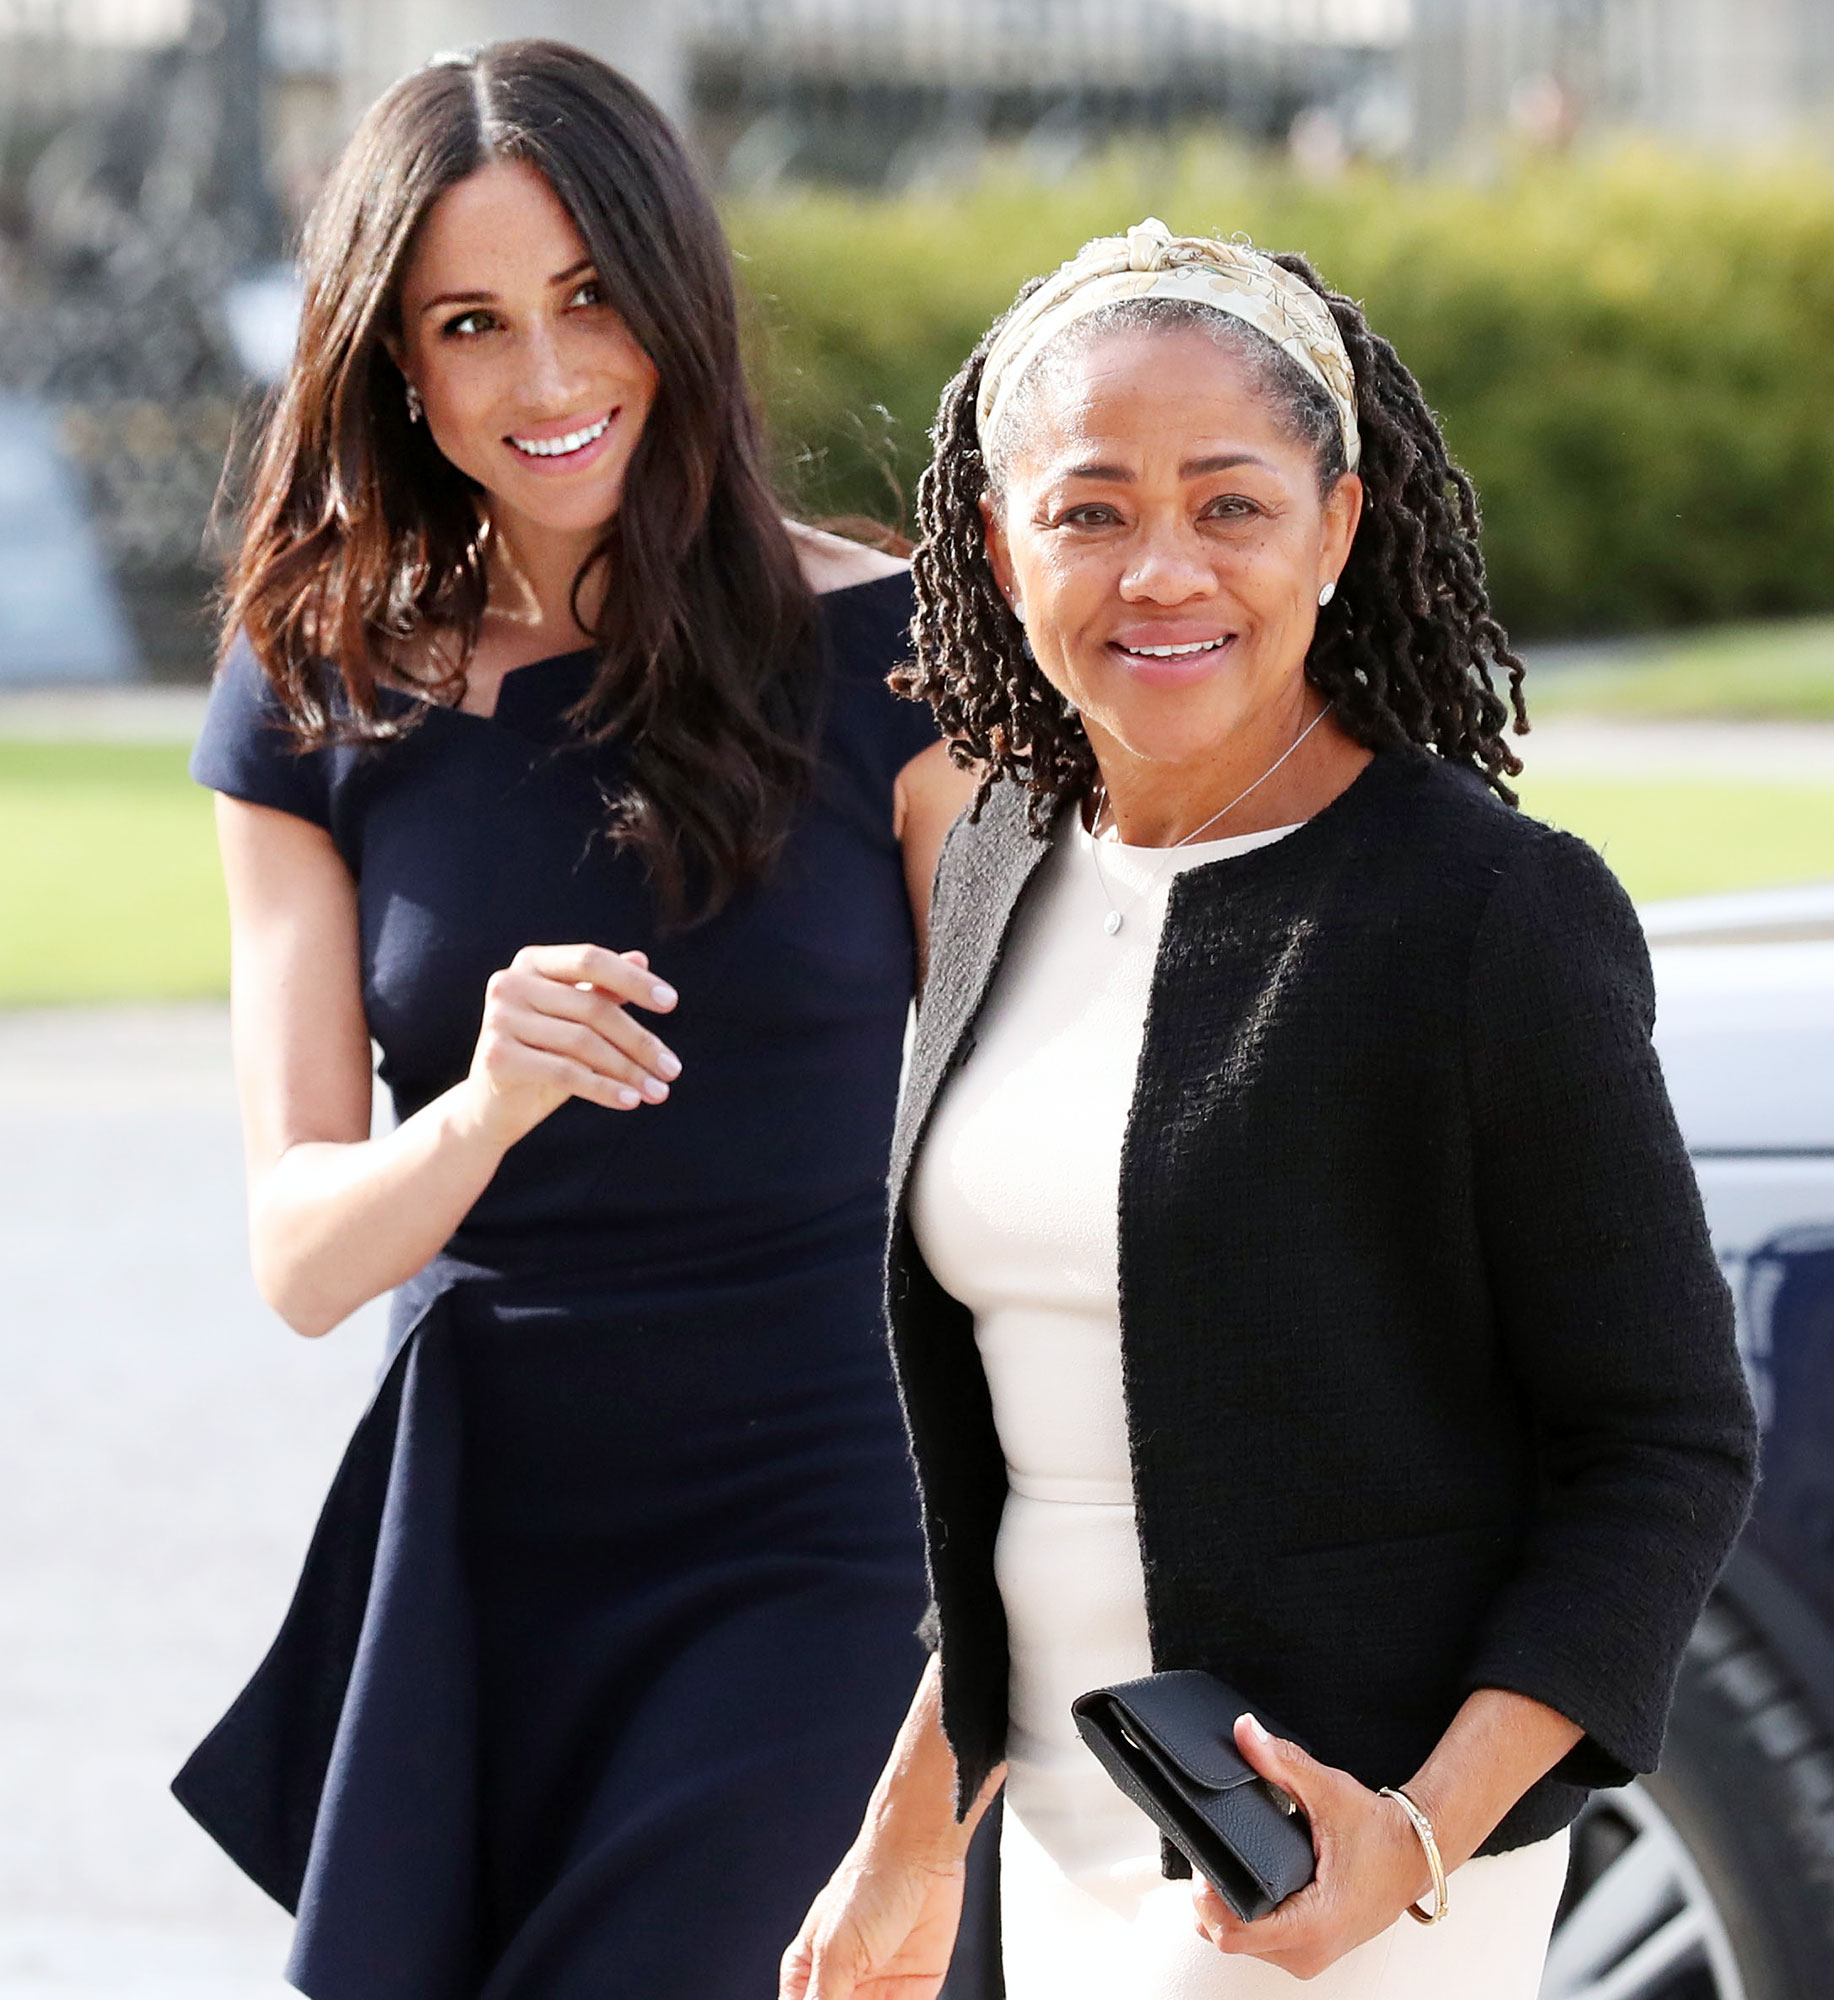 Meghan Markle Has Been Seeing Her Mom Doria Ragland Since Settling Down in Los Angeles